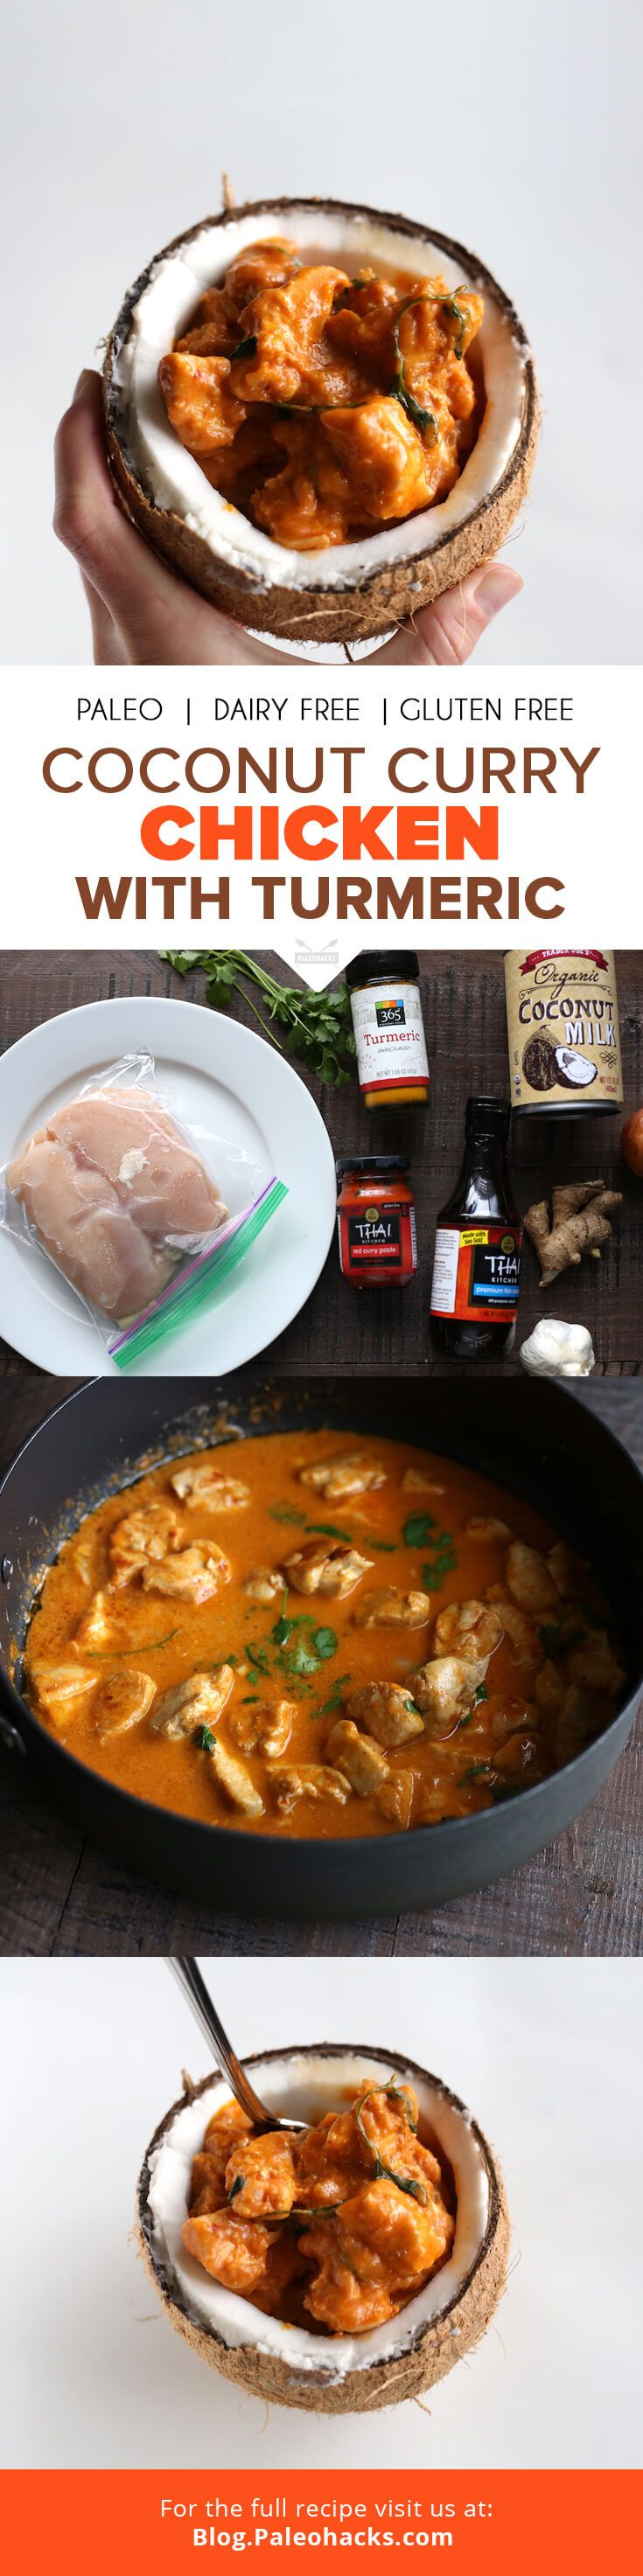 Enjoy this savory 20-minute Coconut Curry recipe inside of a fresh coconut! It's a fun way to eat your dinner. For the full recipe, visit us here: http://paleo.co/turmcococurry